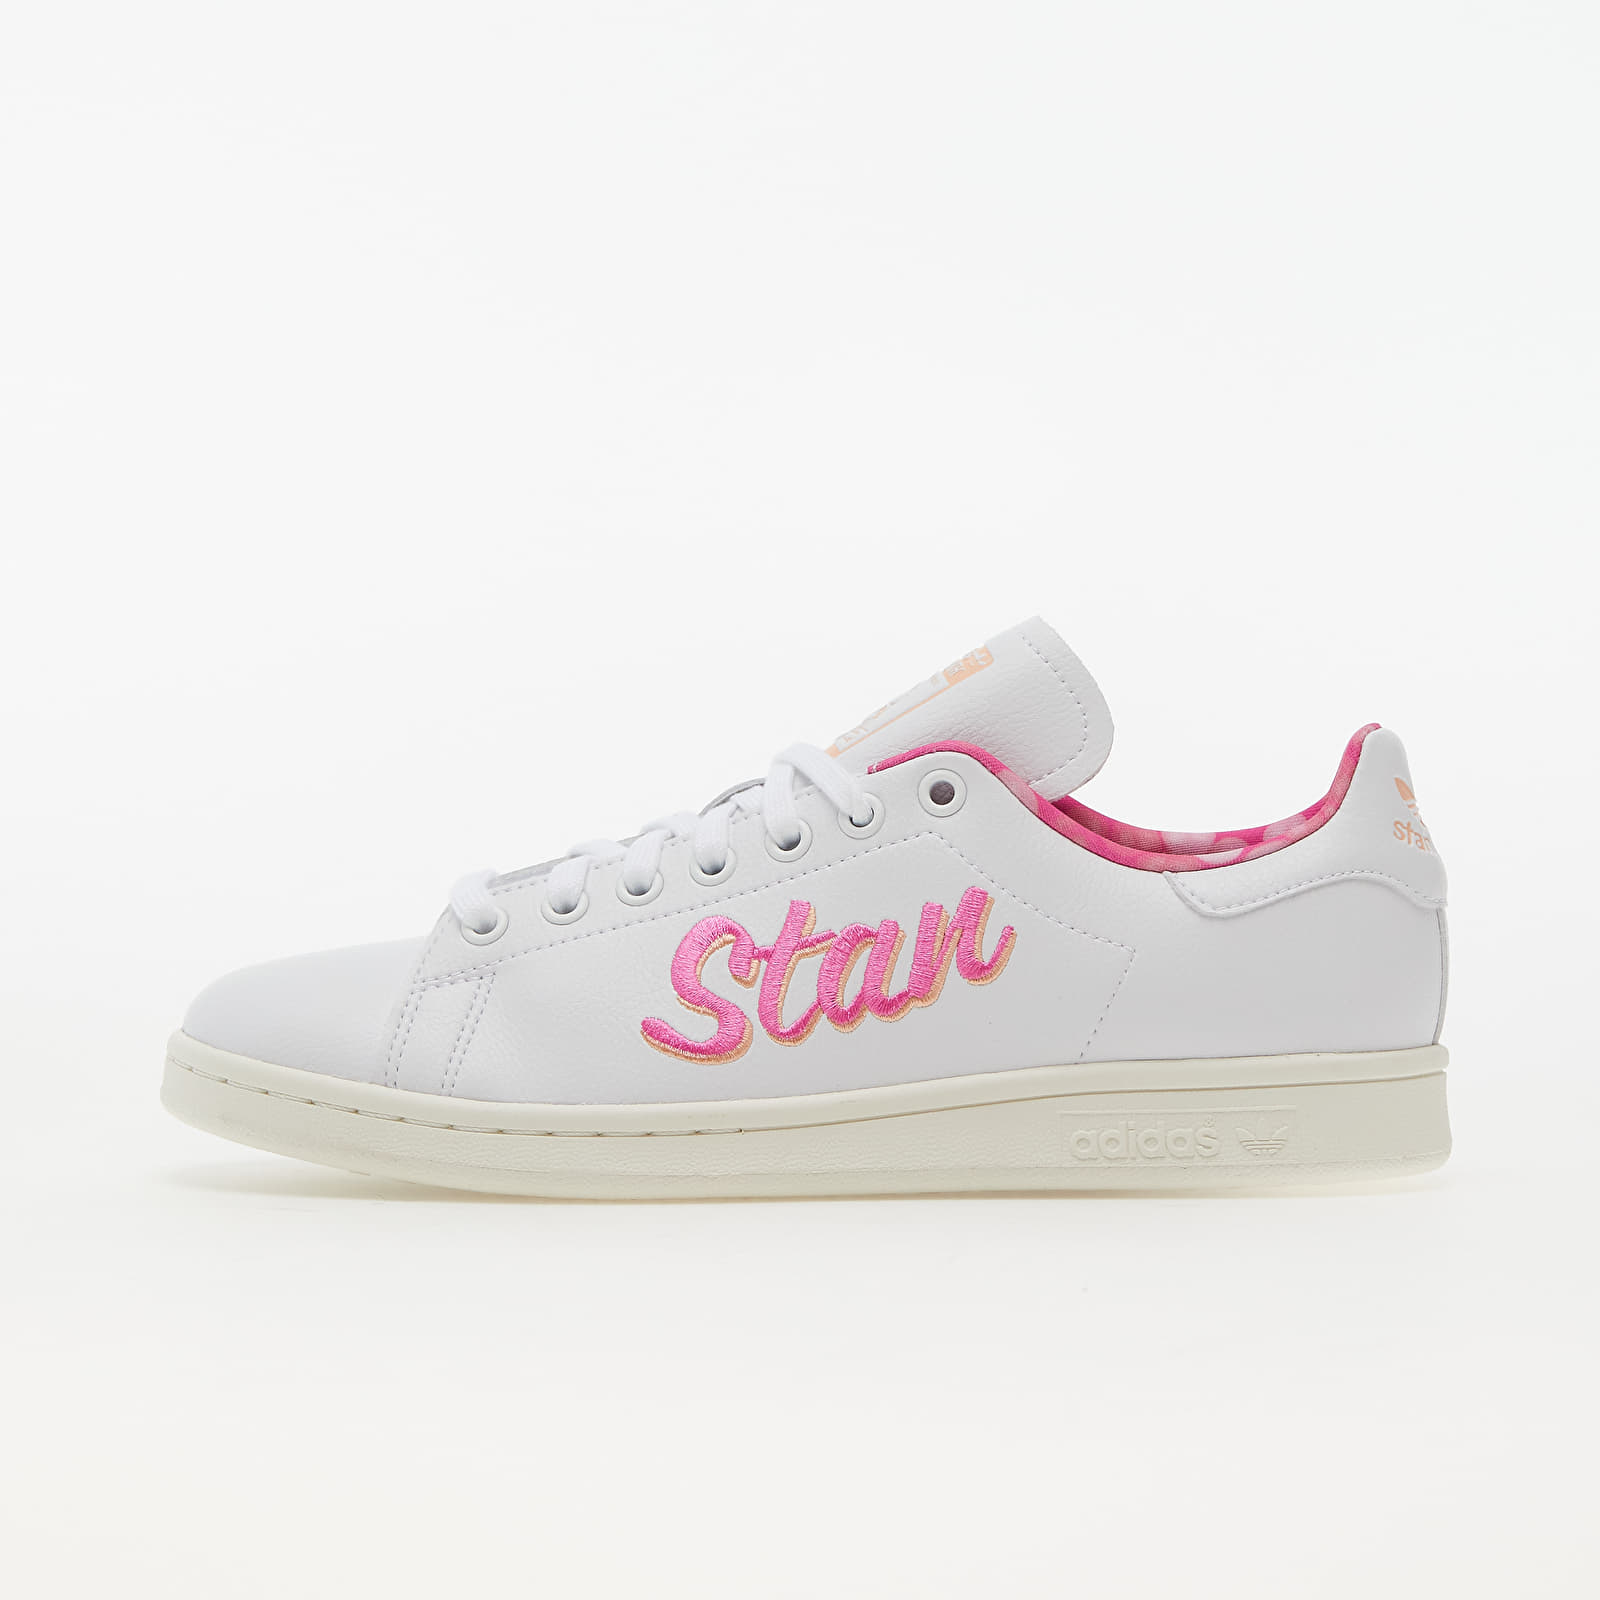 adidas Stan Smith Ftw White/ Screaming Pink/ Off White EUR 44